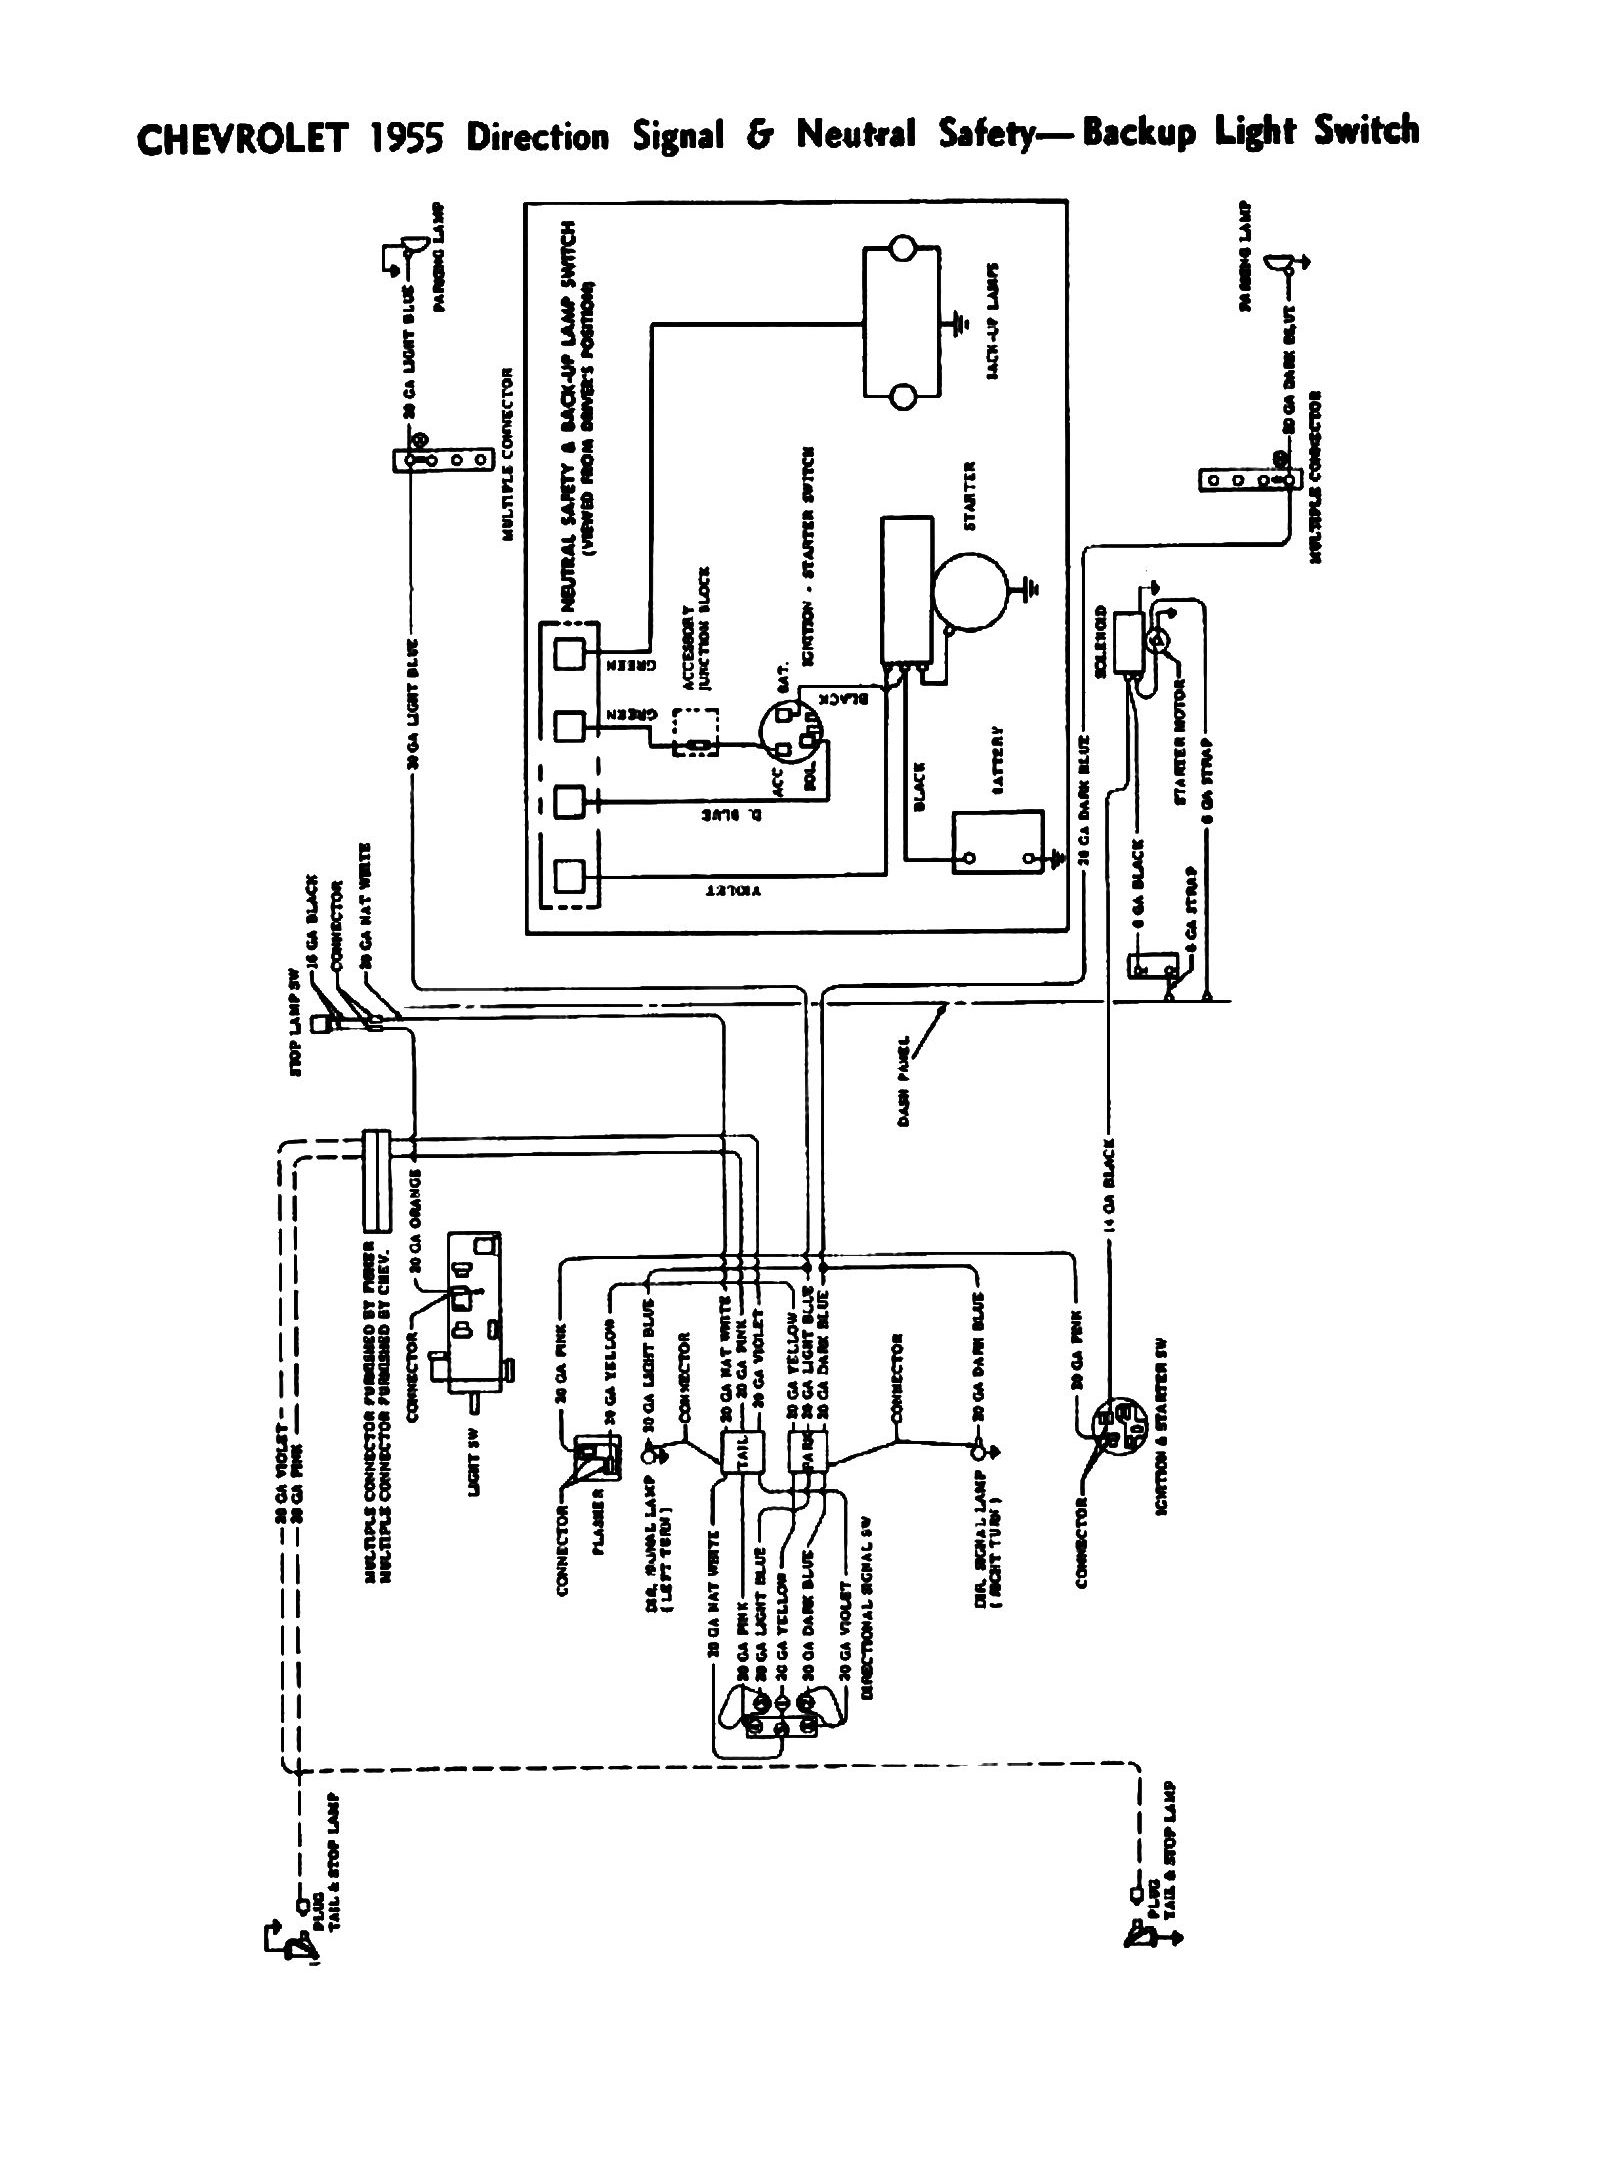 Chevy wiring schematics on wiring diagram headlight switch 55 chevrolet readingrat net Chevy Radio Wiring Diagram for 2002 2500 82 Chevy Pickup Engine Wiring Diagram